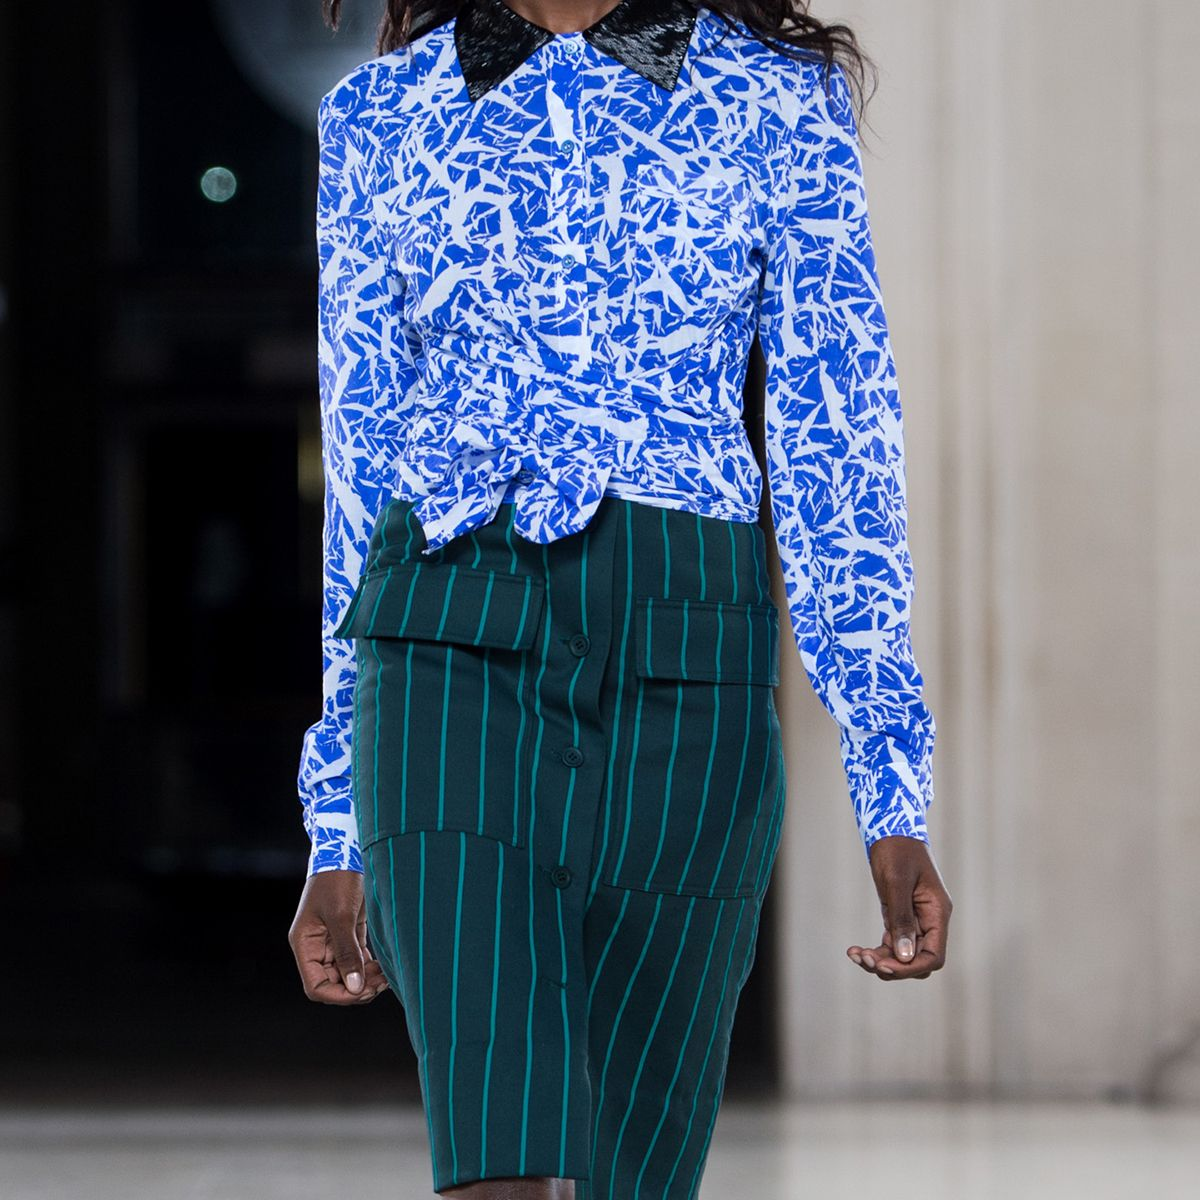 London Fashion Week trends you'll want to wear Fashion Tips